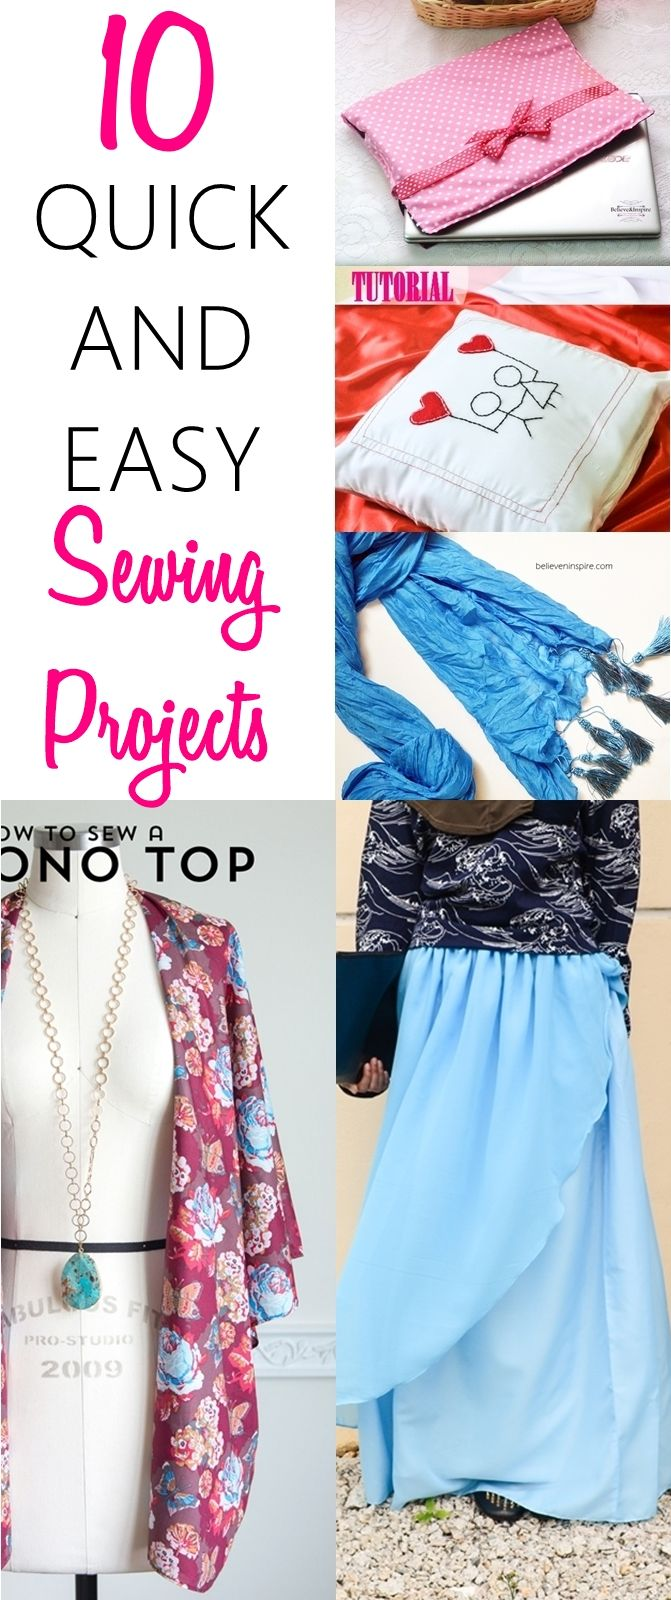 4895 best craft projects for adults images on pinterest | couture